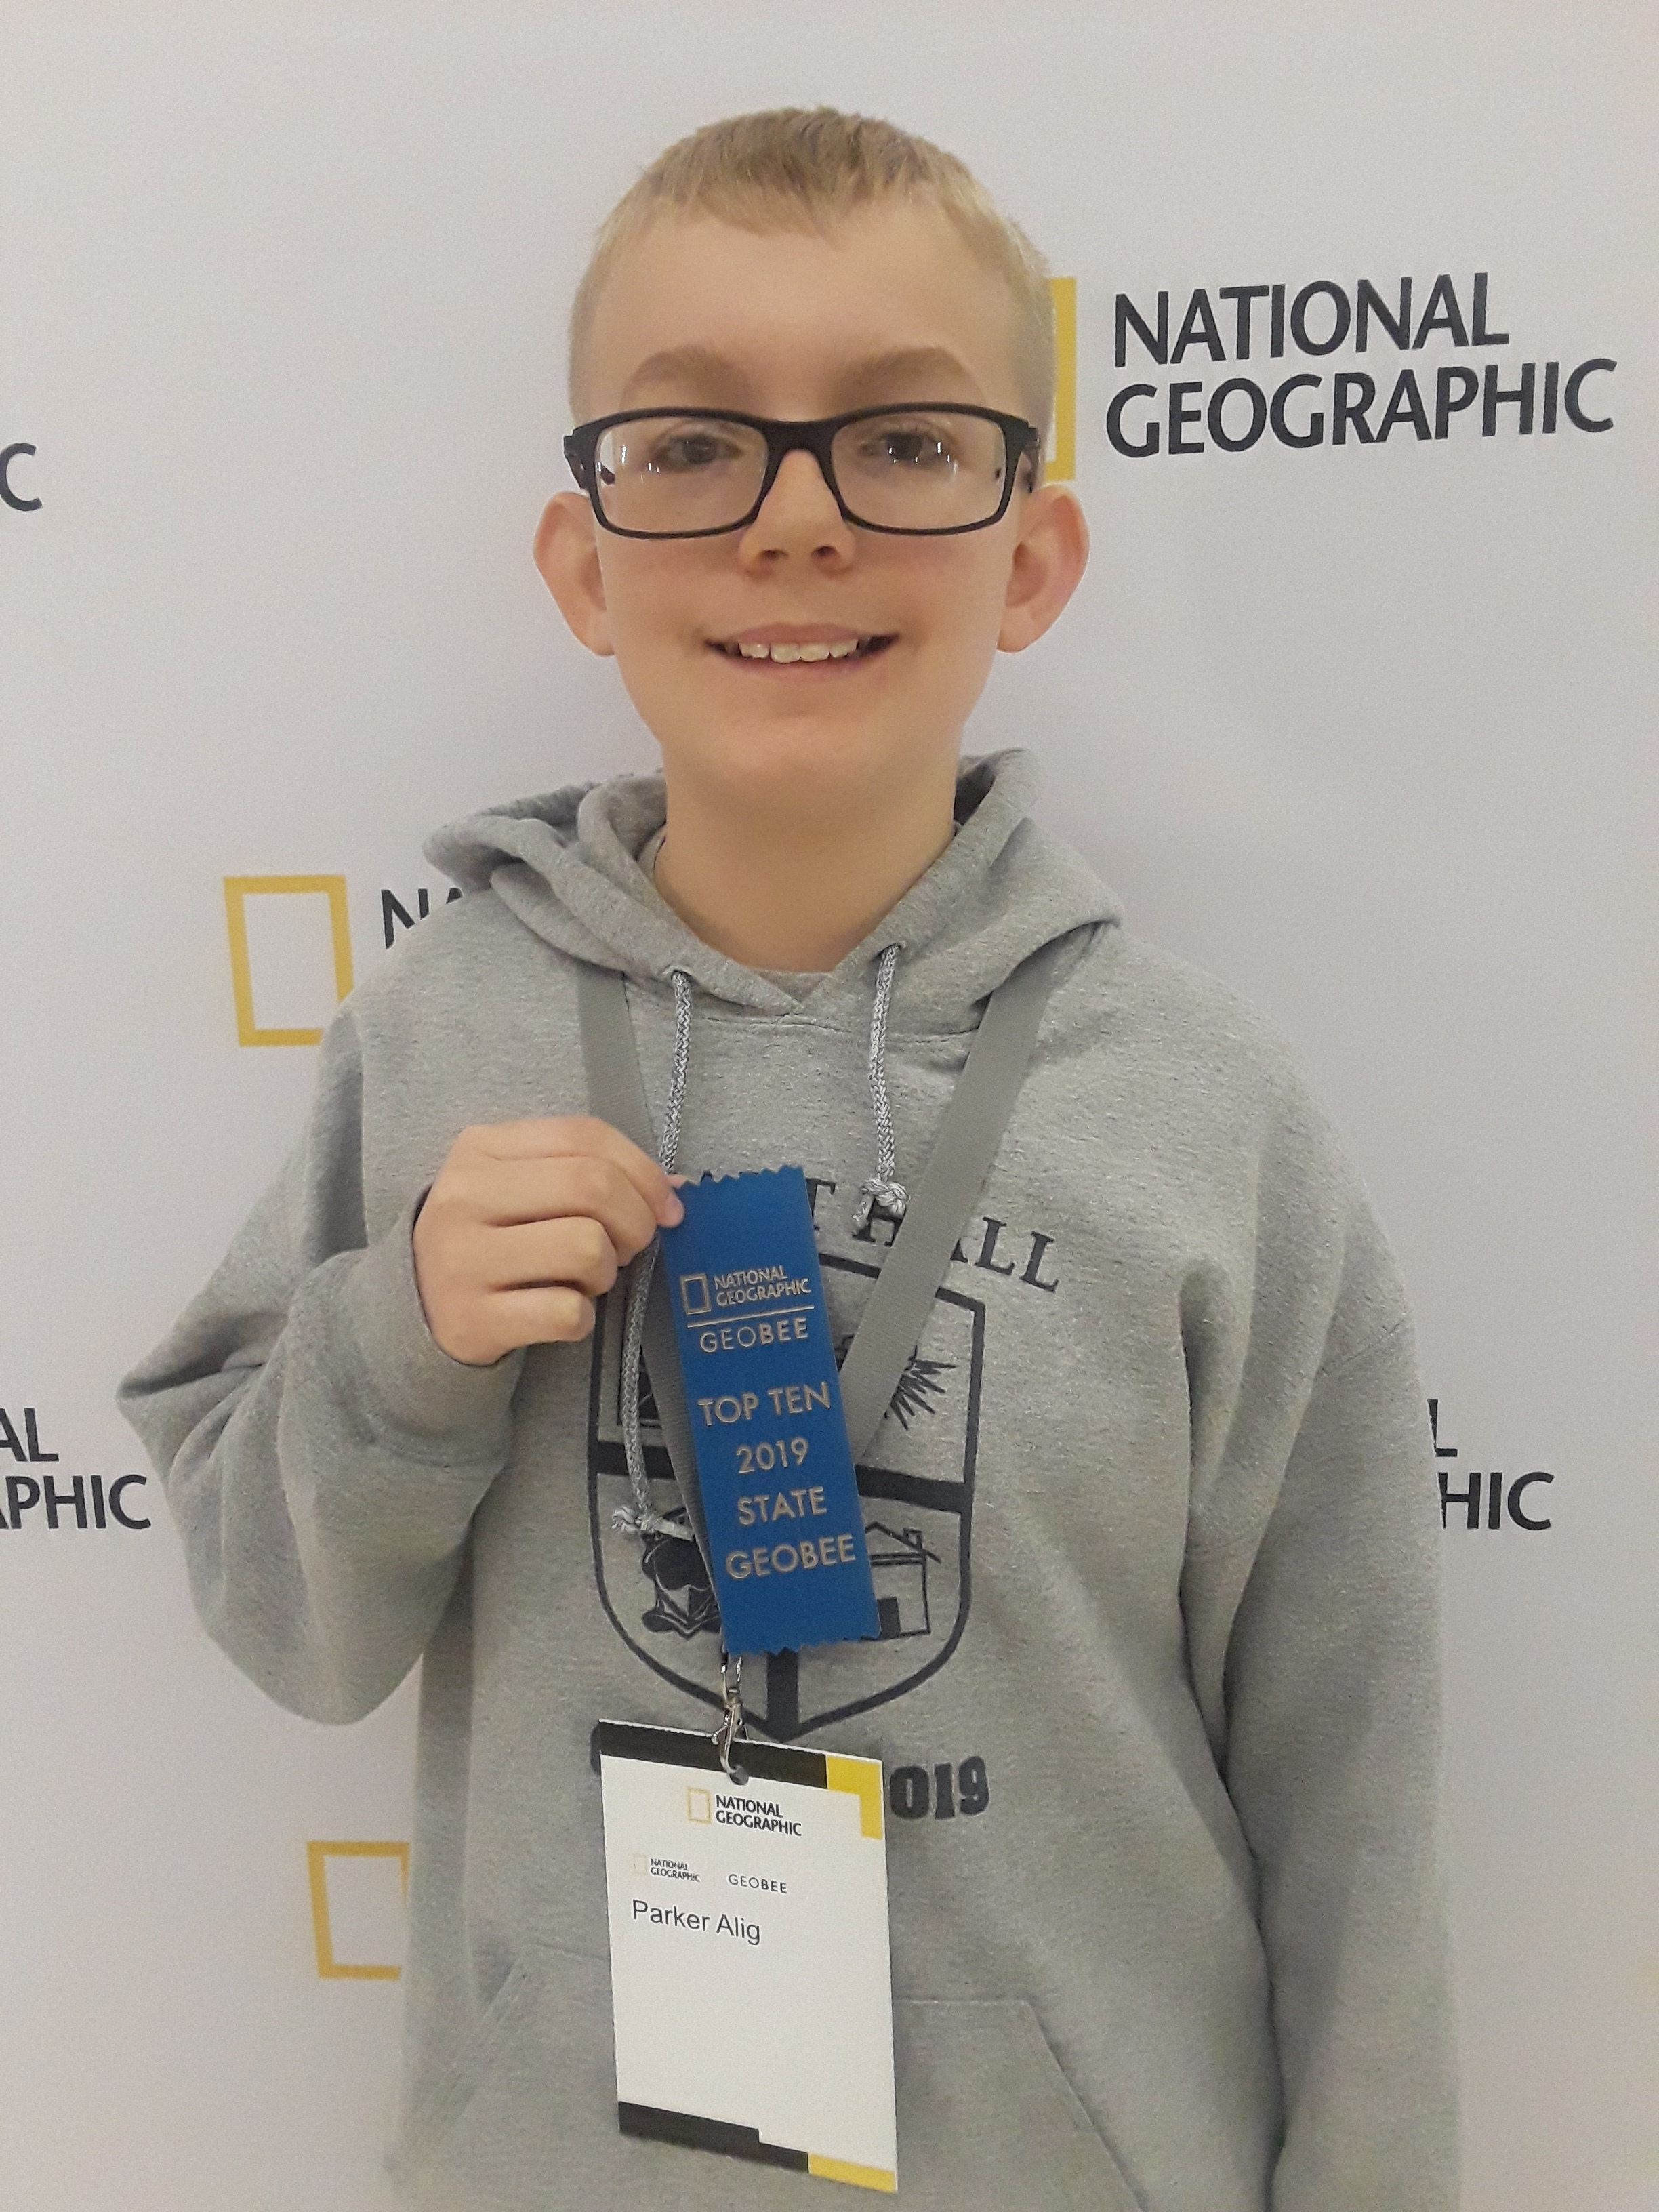 parker alig - 6th state geo bee.jpg